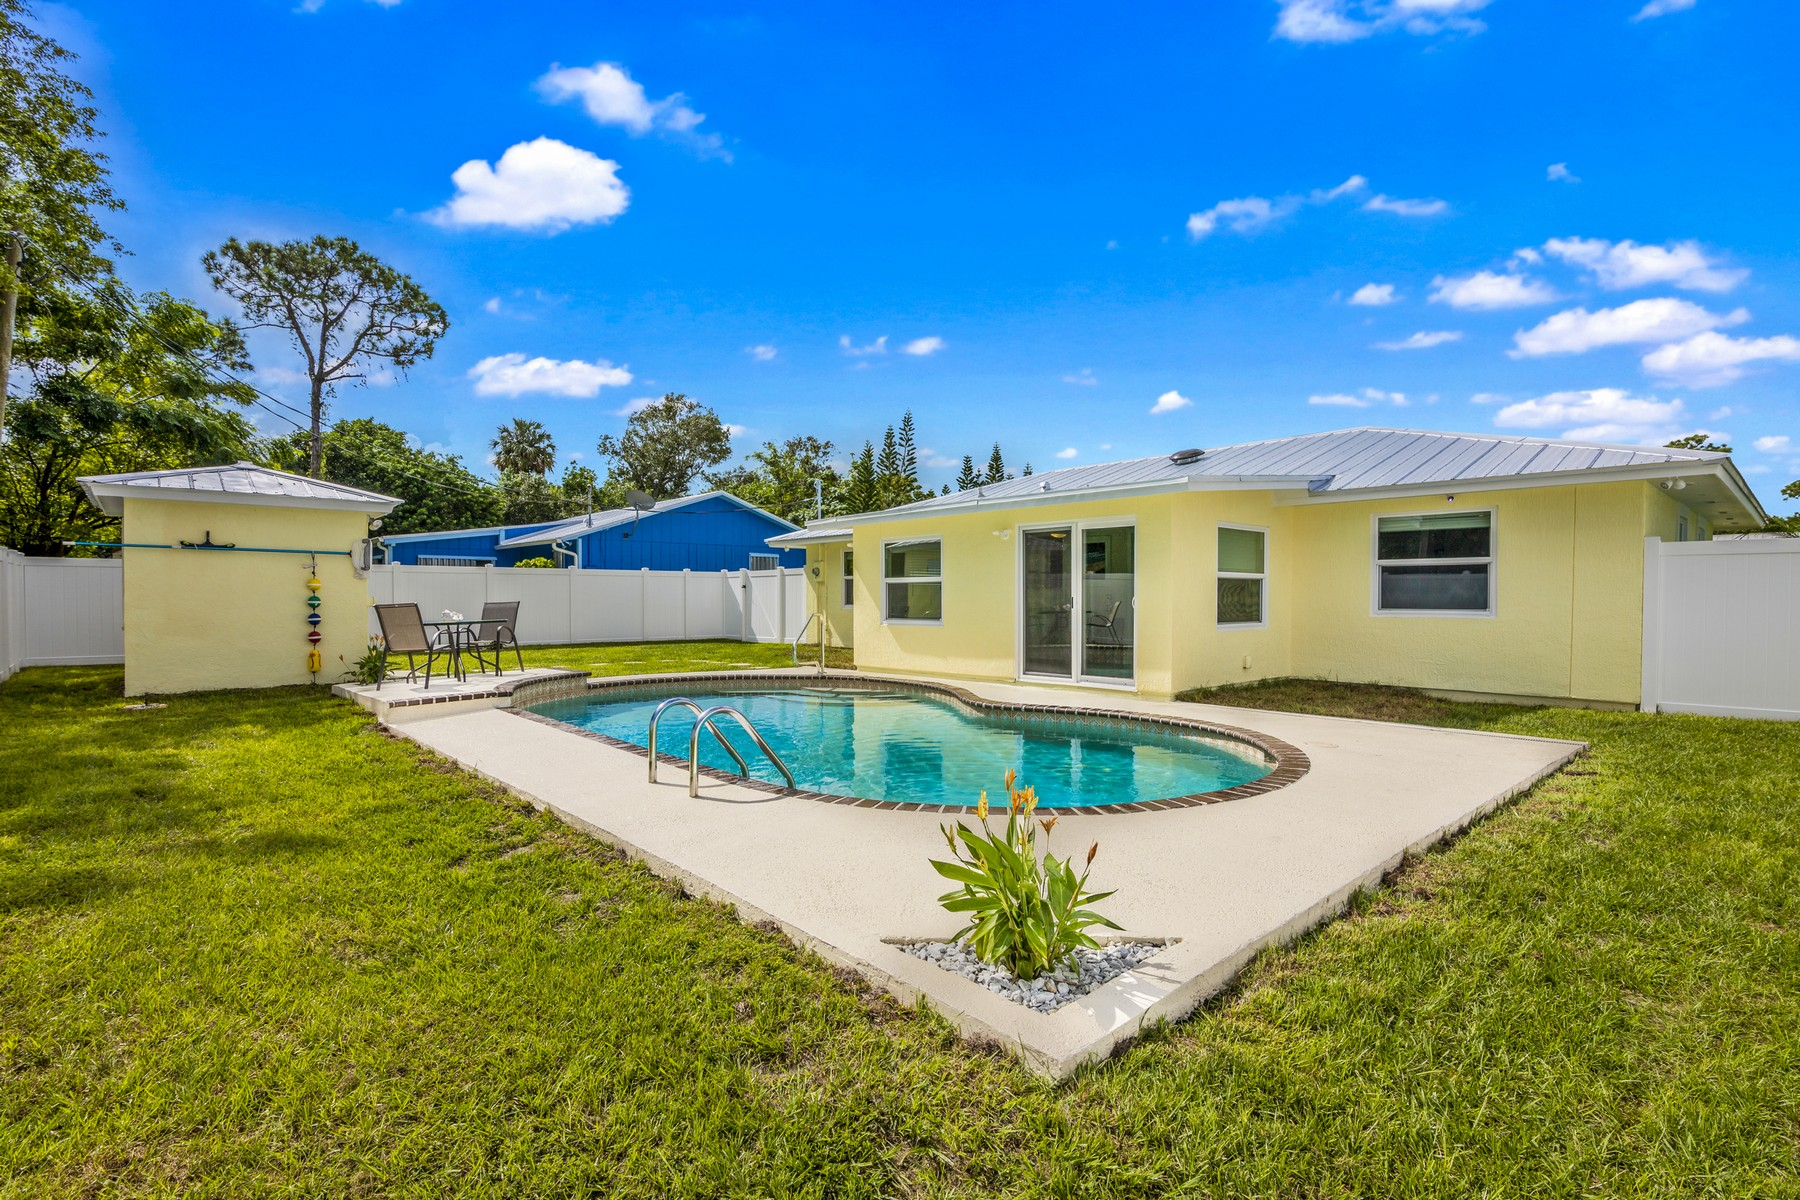 Single Family Homes for Sale at Transformation Extraordinare! 106 11th Court Vero Beach, Florida 32960 United States